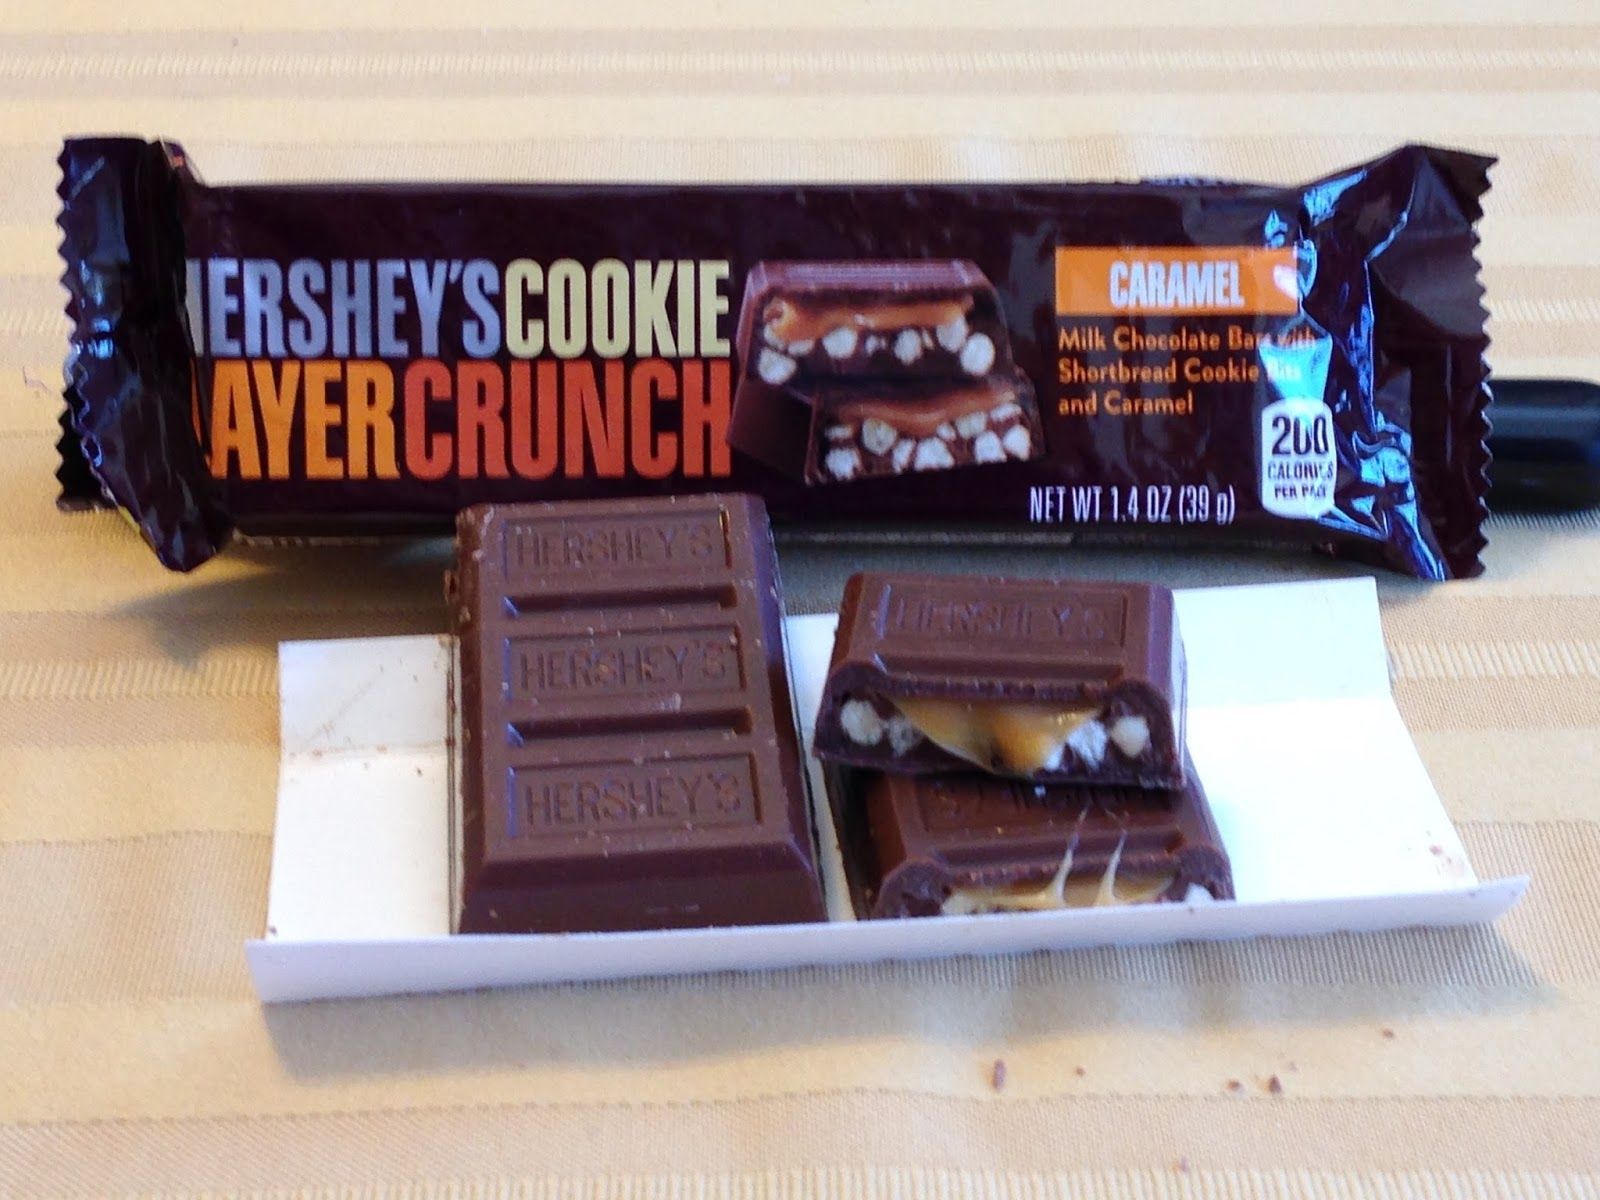 Hershey S Cookie Layer Crunch Bar Caramel Variety I M Sure Many Of